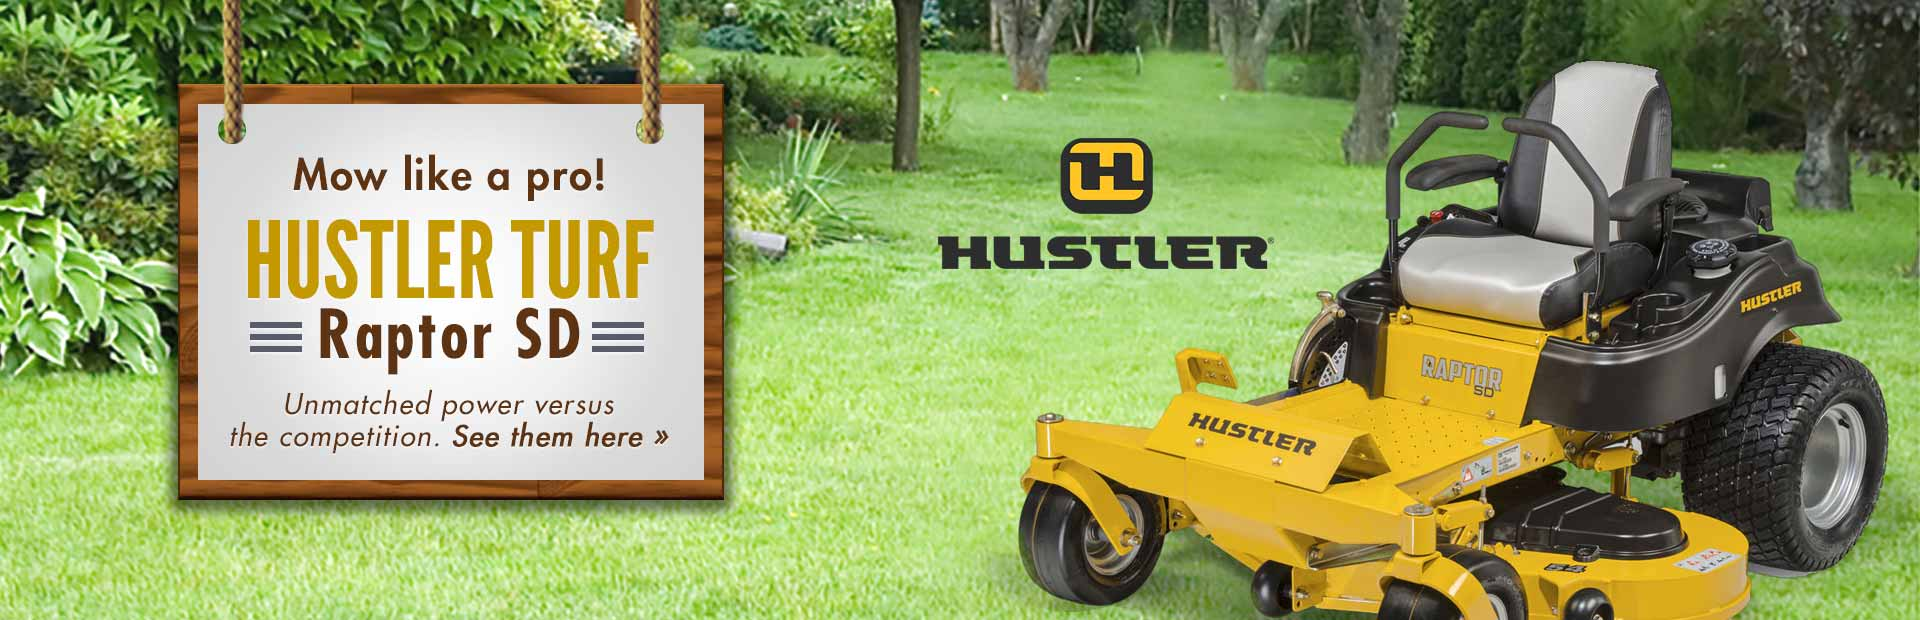 Hustler Turf Raptor SD: Click here for HUGE savings